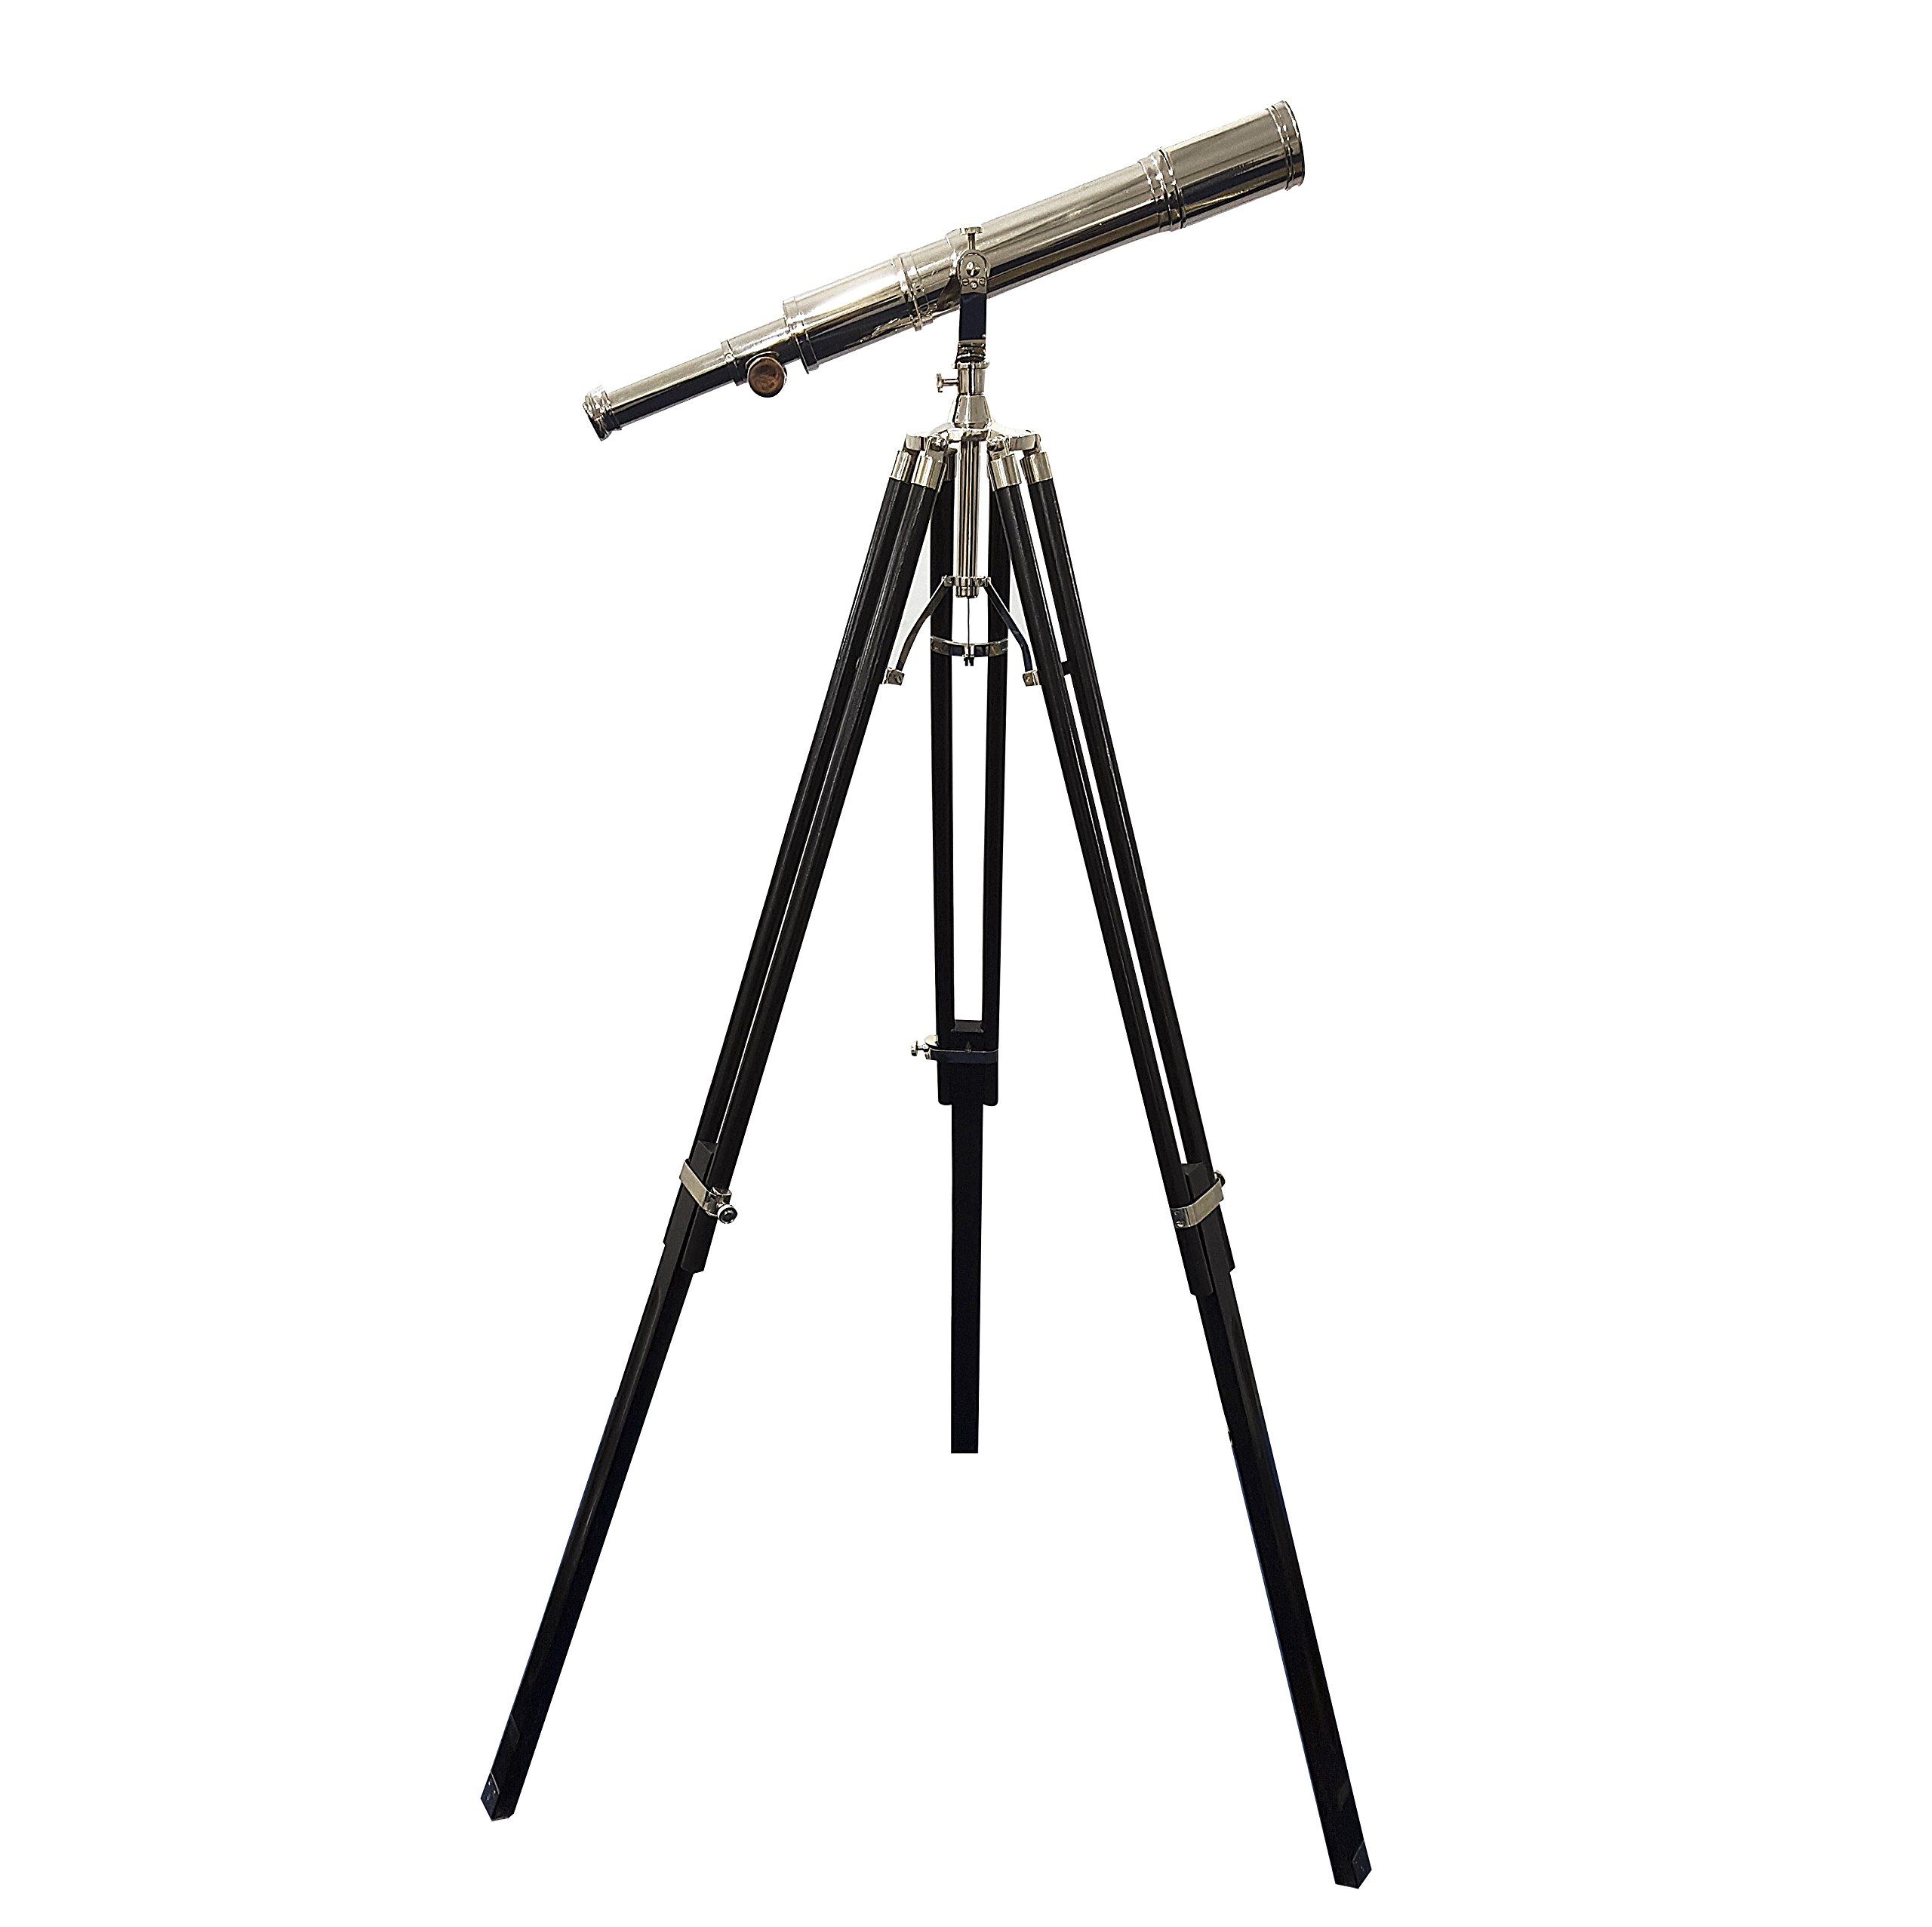 Royal Vintage Telescope Nickel Finish Wooden Black Tripod Home Decor Marine Gift Item